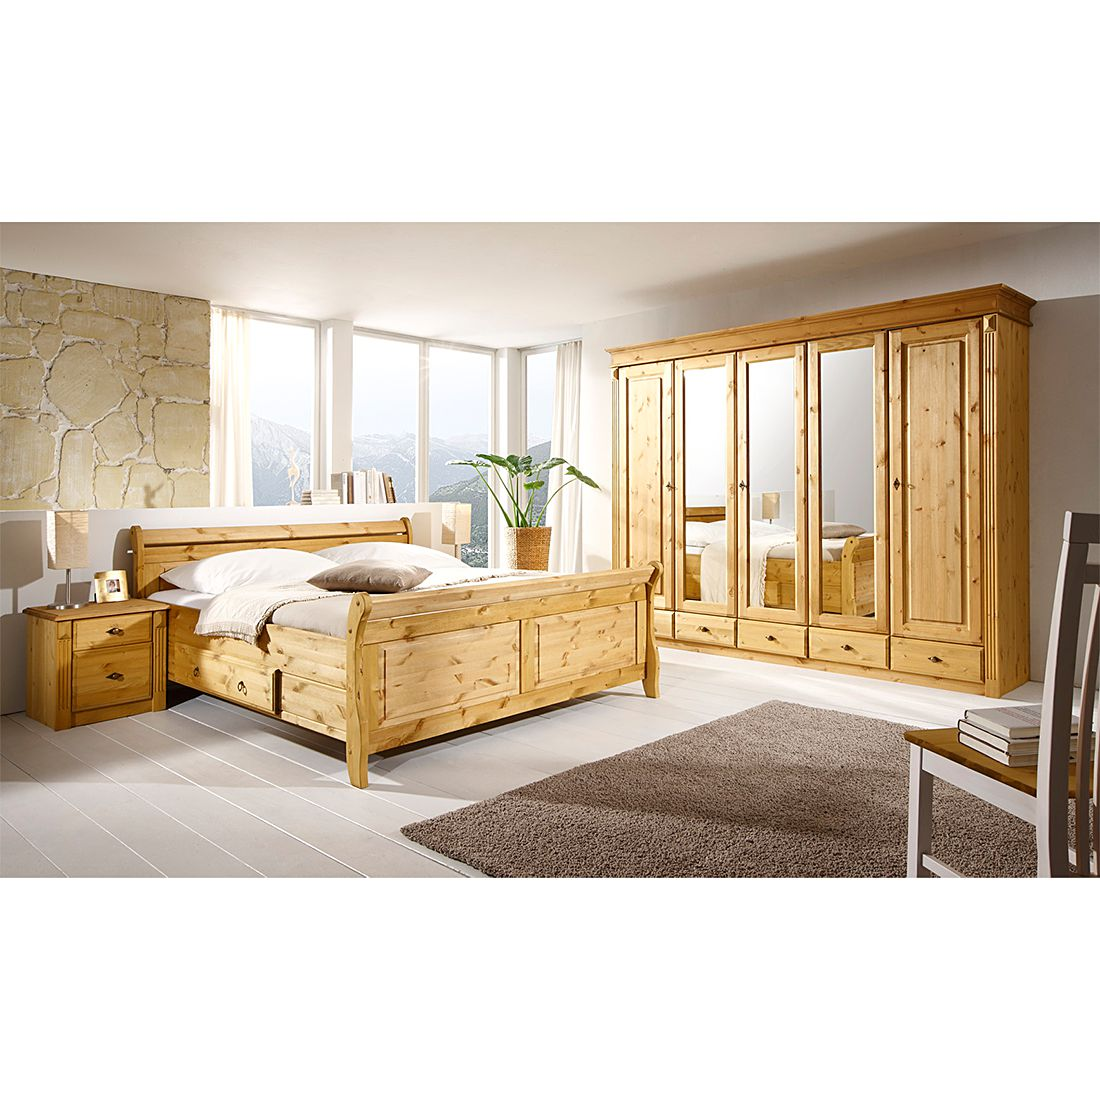 schlafzimmer schrank set disselkamp schlafzimmer kiefer ideen tapeten 11qm einrichten f r bei. Black Bedroom Furniture Sets. Home Design Ideas